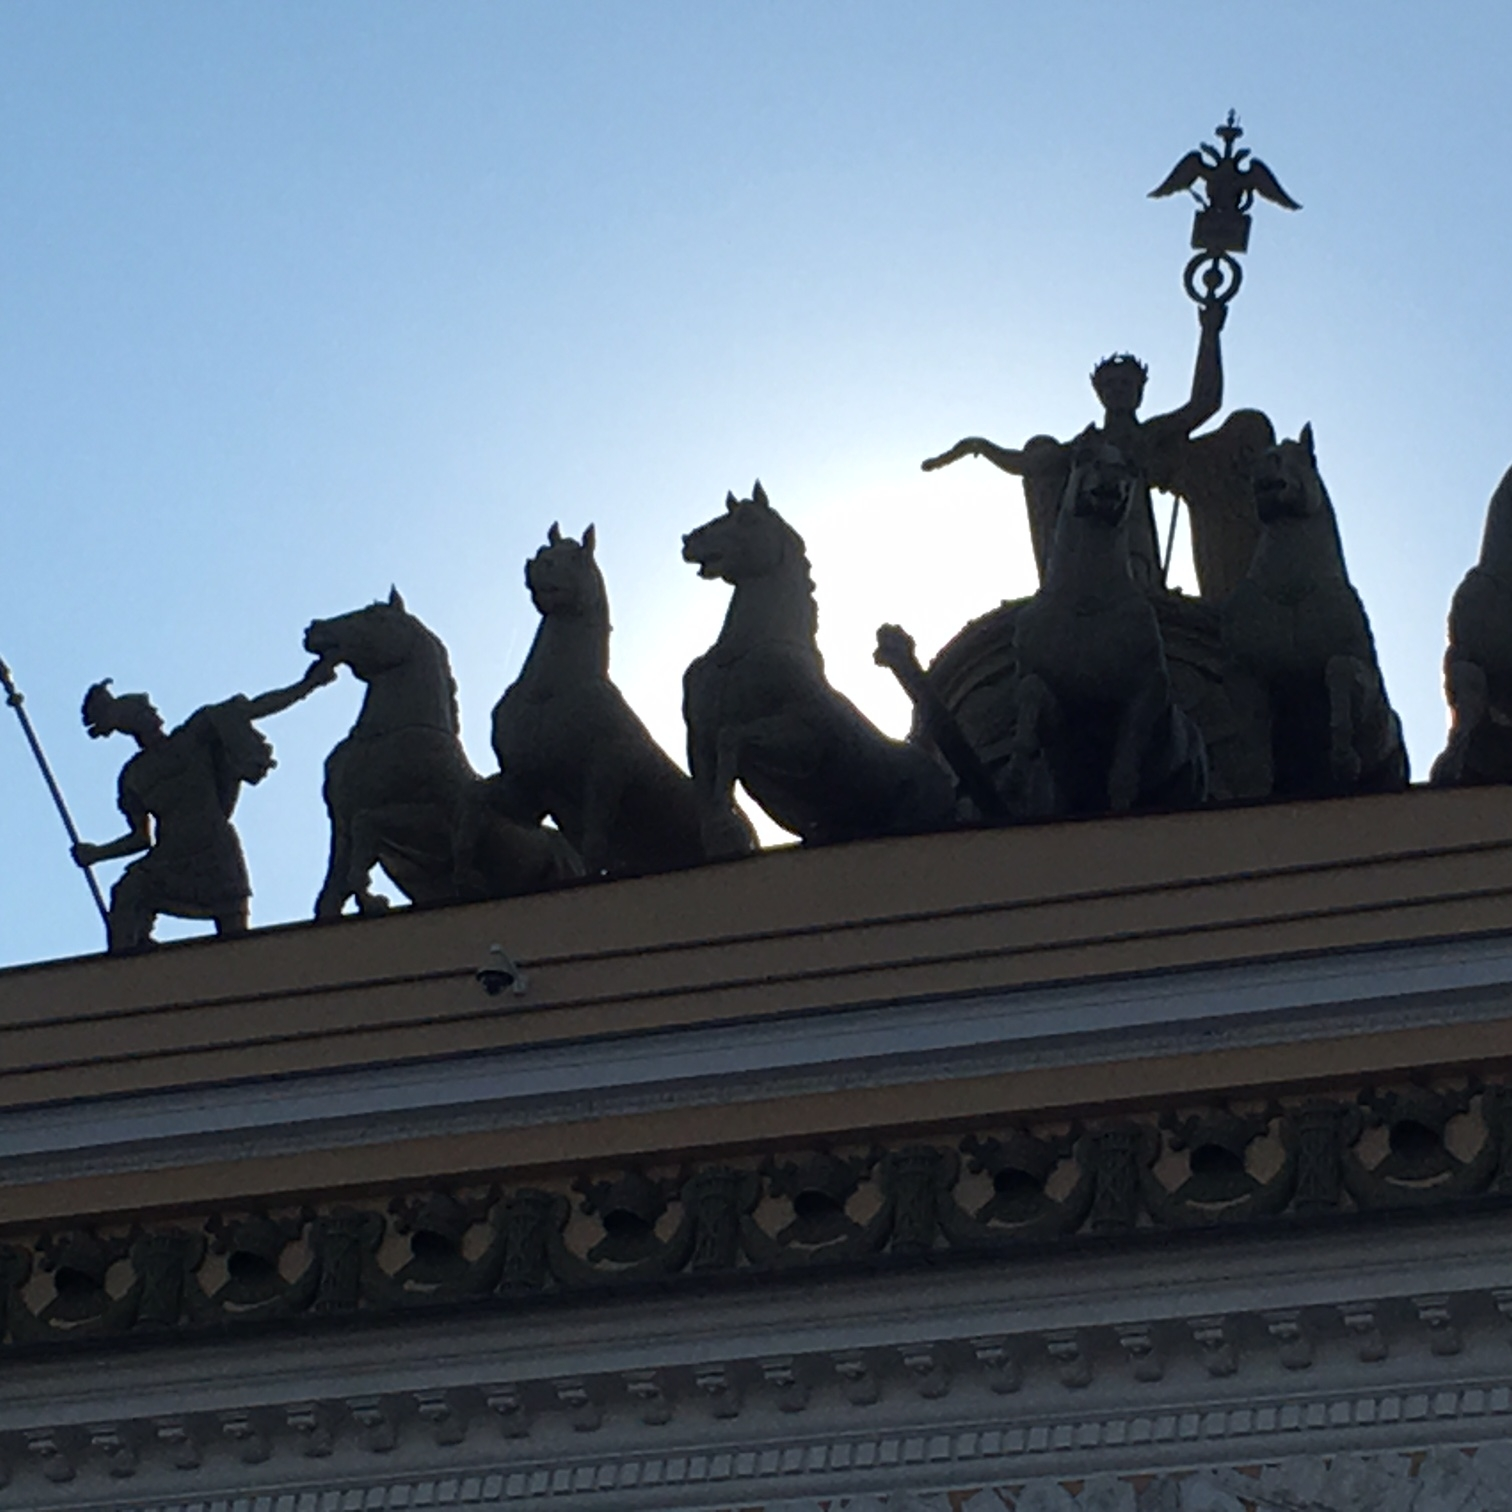 Admiralty Square, St Petersburg by The Doubtful Traveller